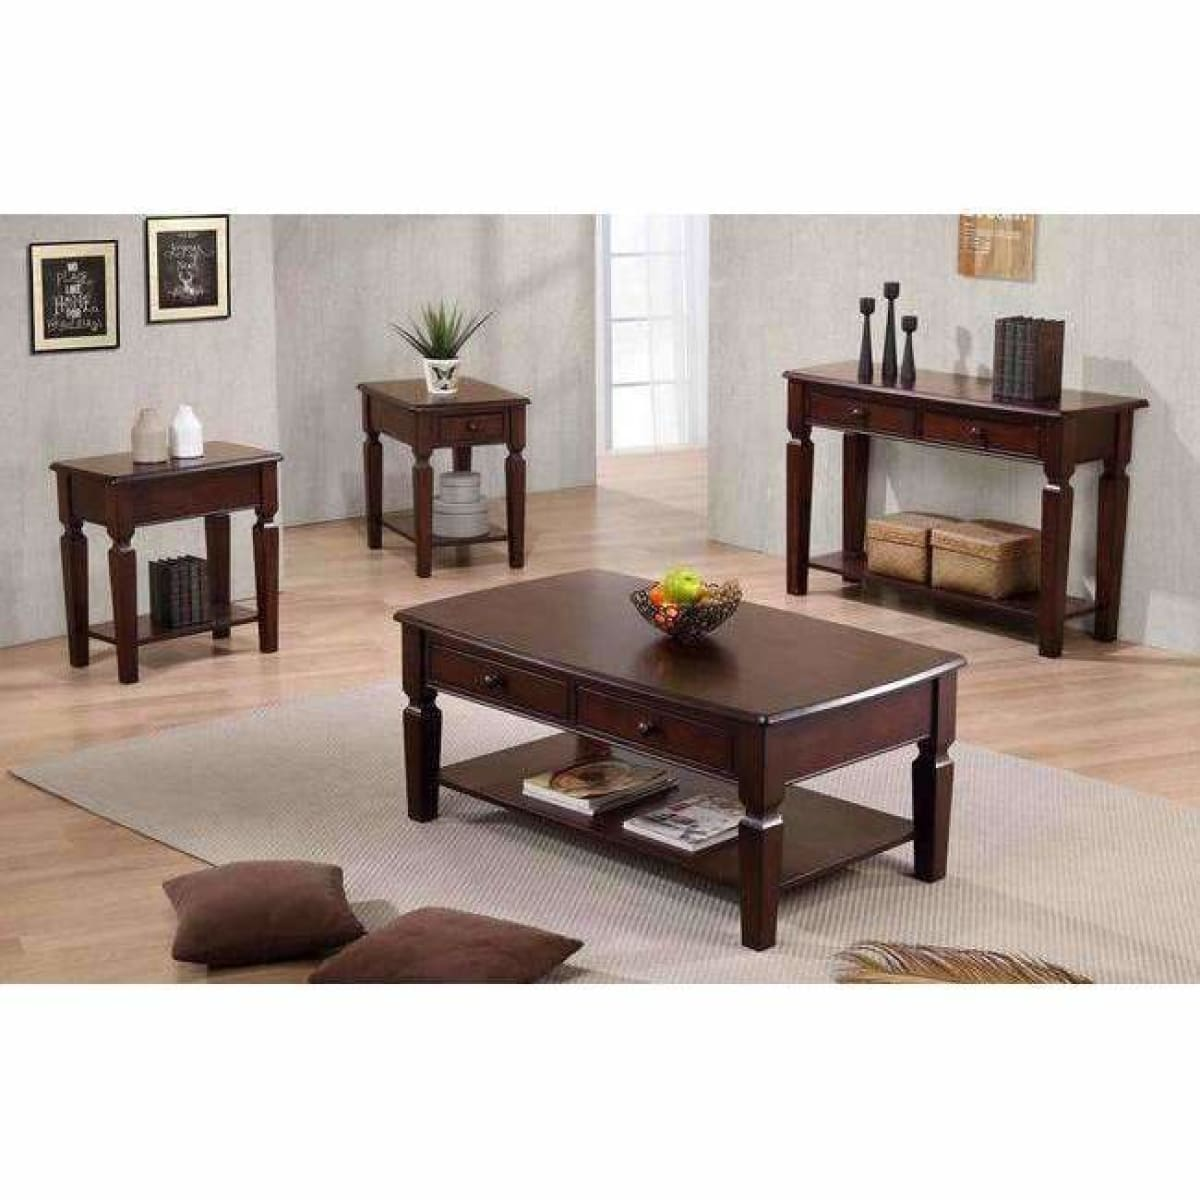 Santa Fe 48 Coffee Table - COFFEE TABLE